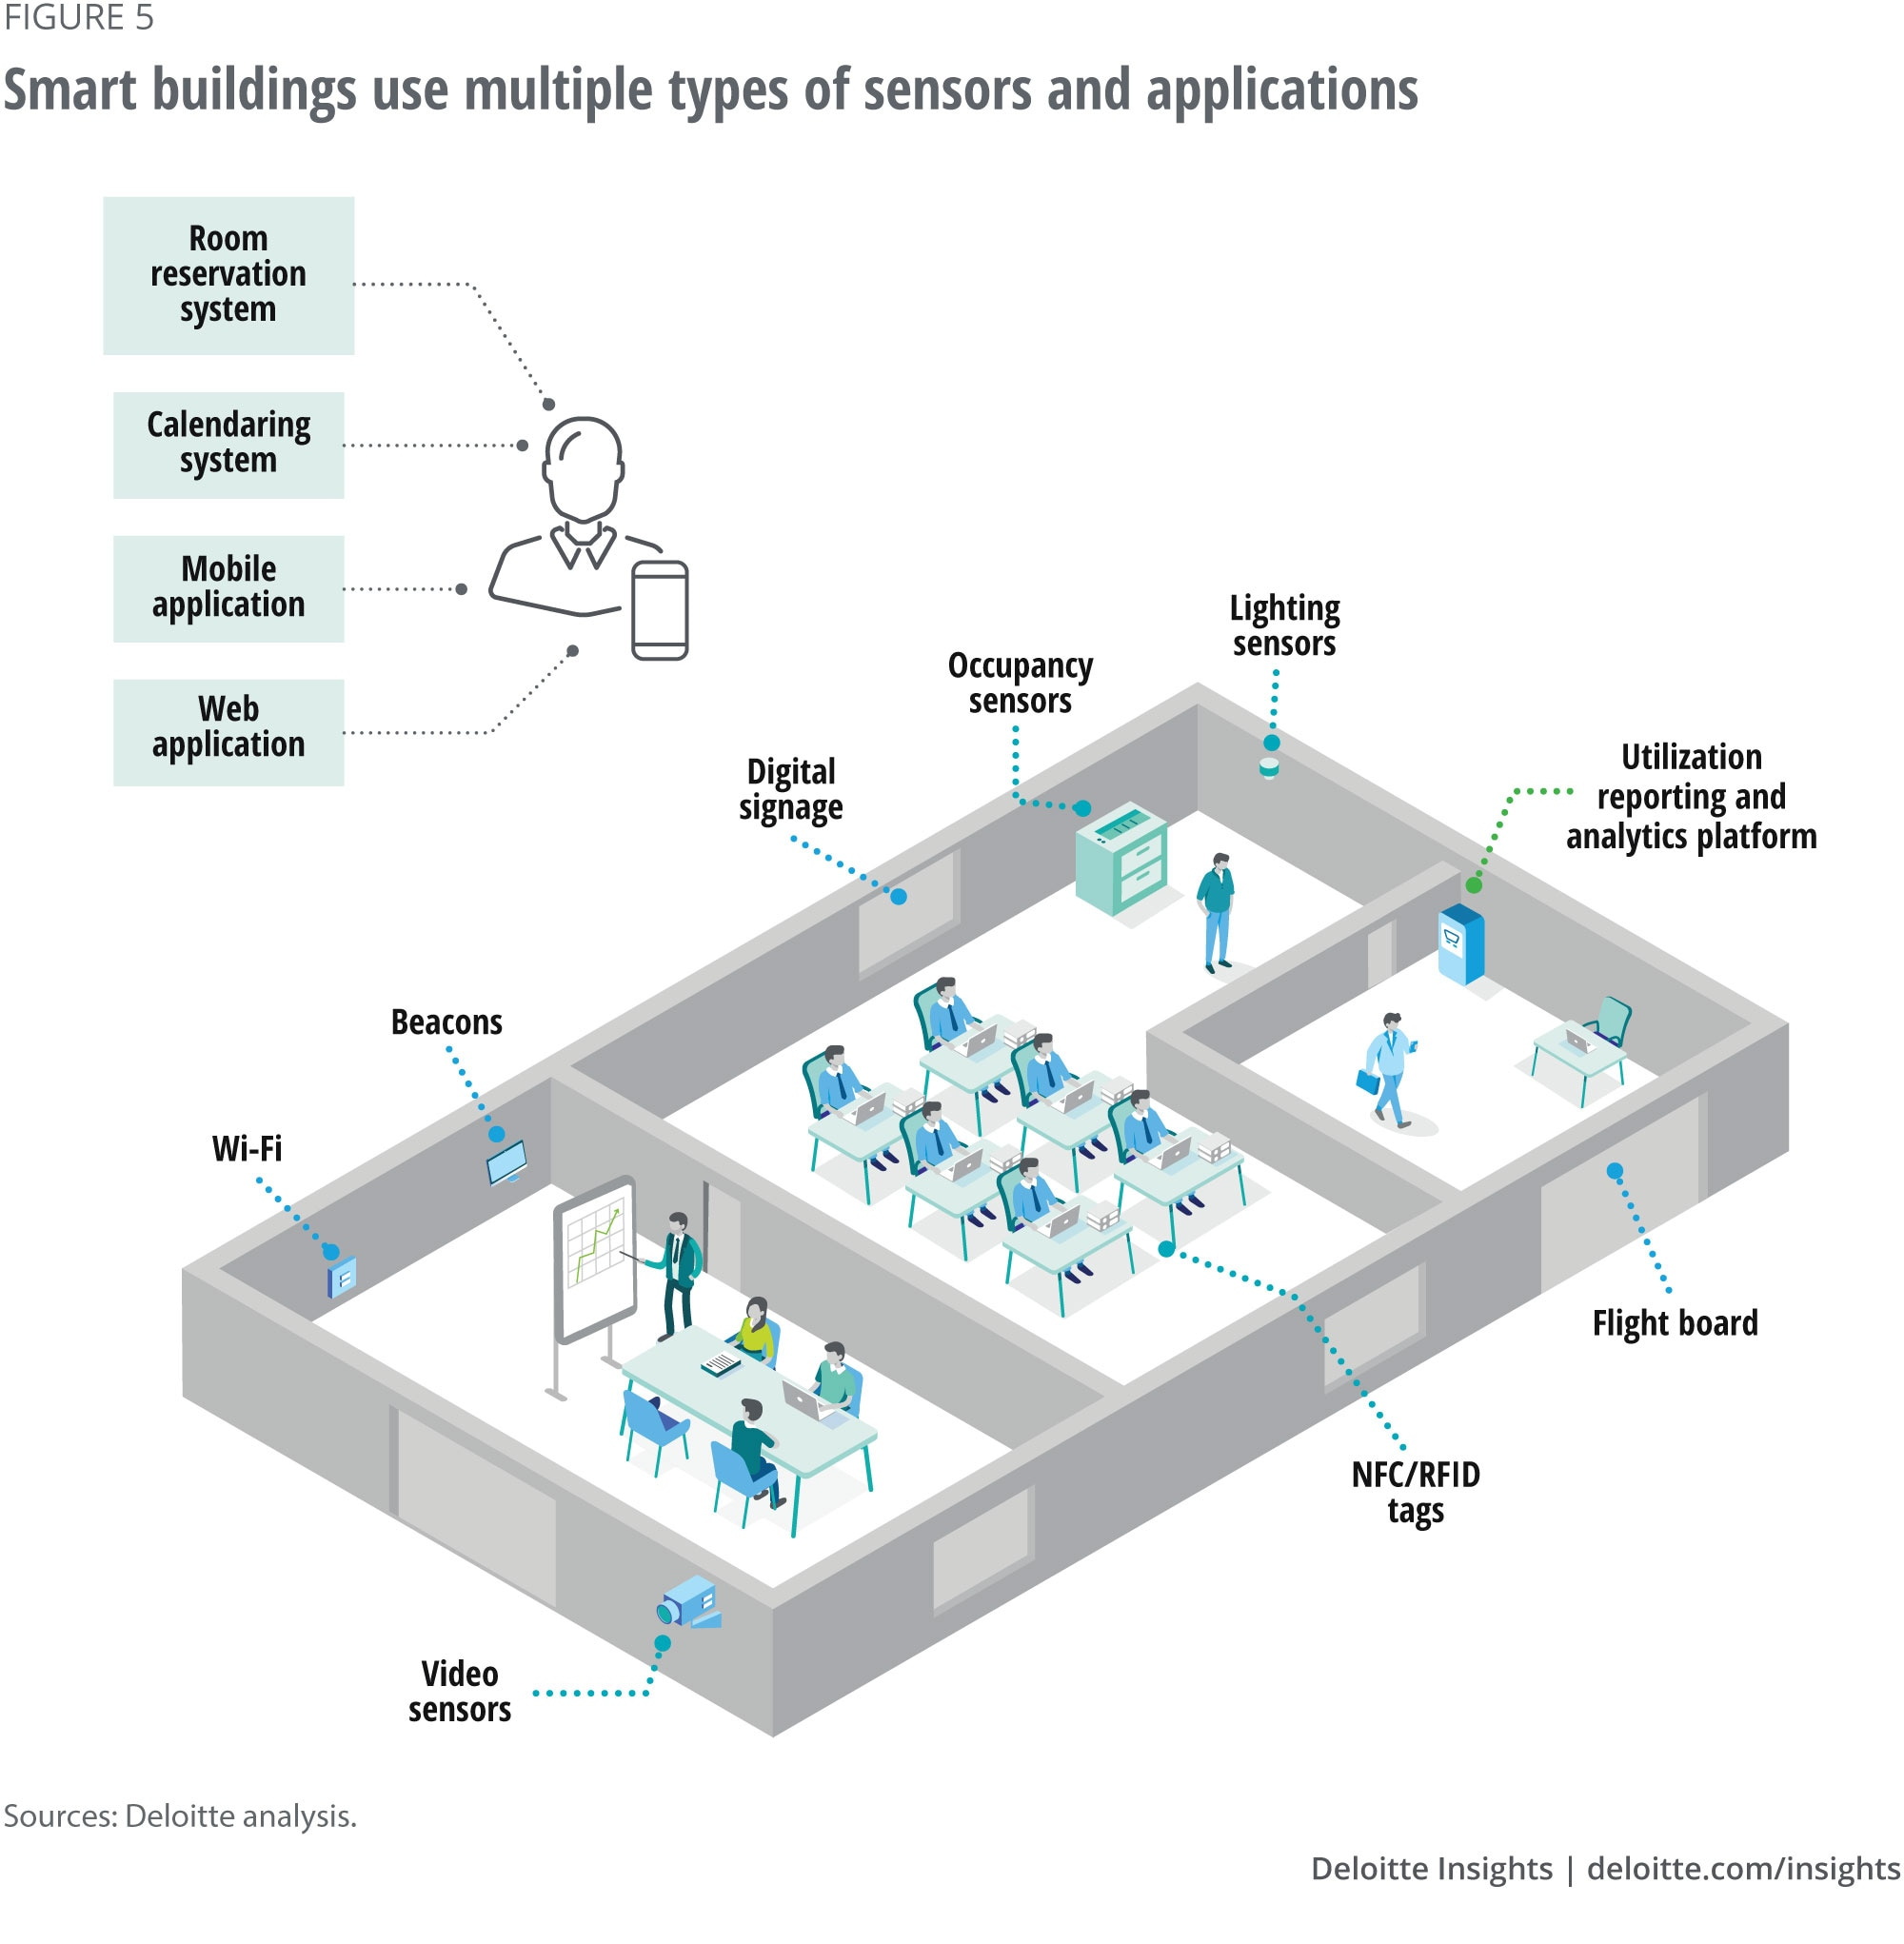 Smart buildings use multiple types of sensors and applications